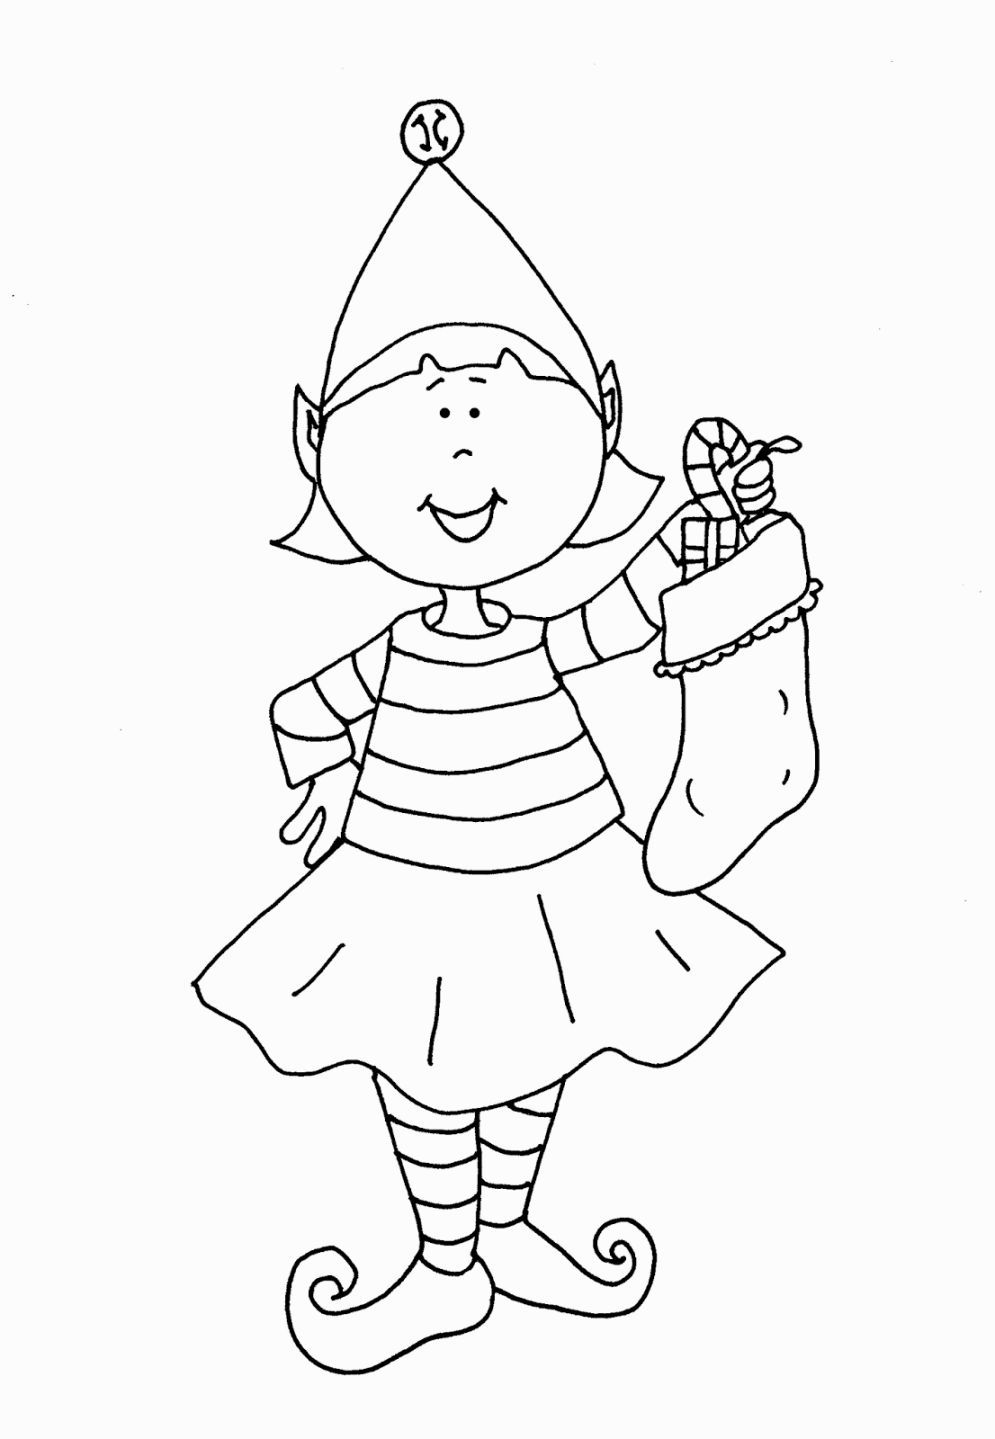 Free Christmas Coloring Pages Elf With Printable Xmas Chair Design Pinterest Elves